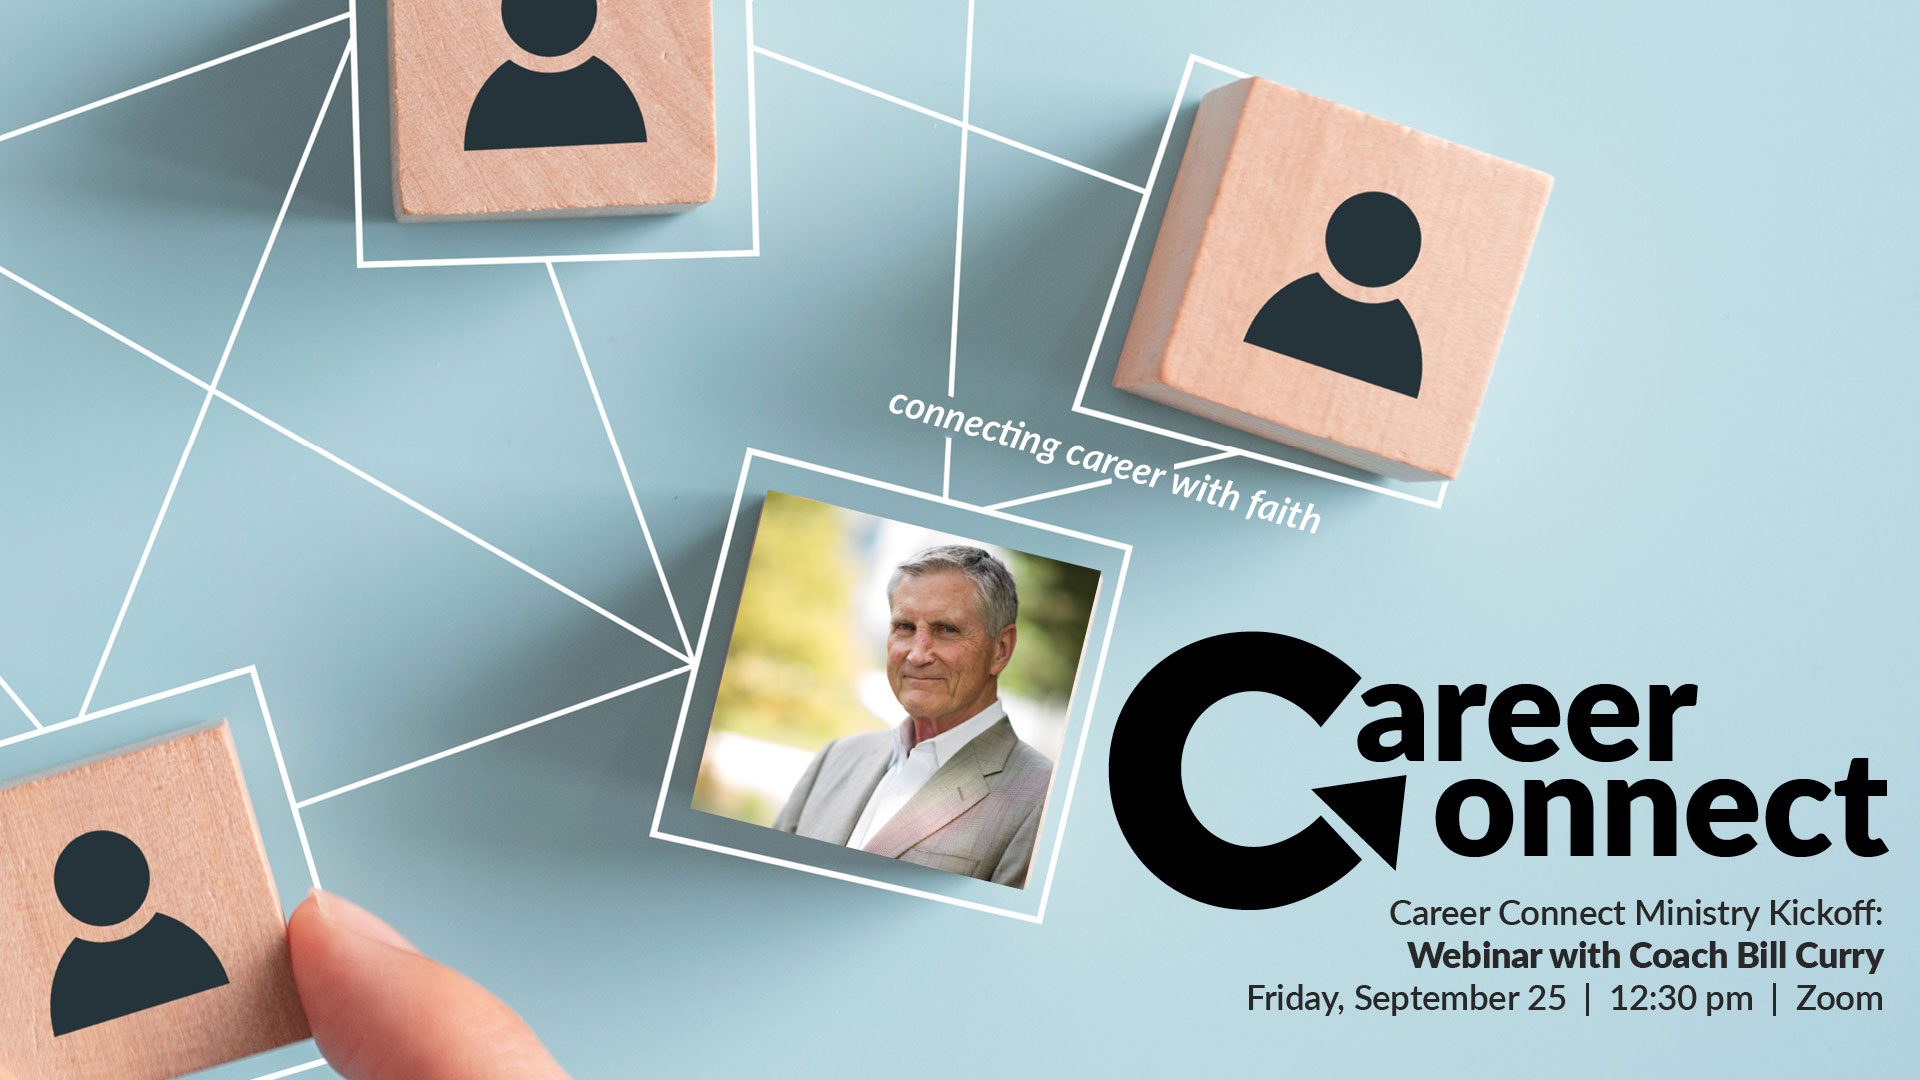 Career Connect Networking Mininstry